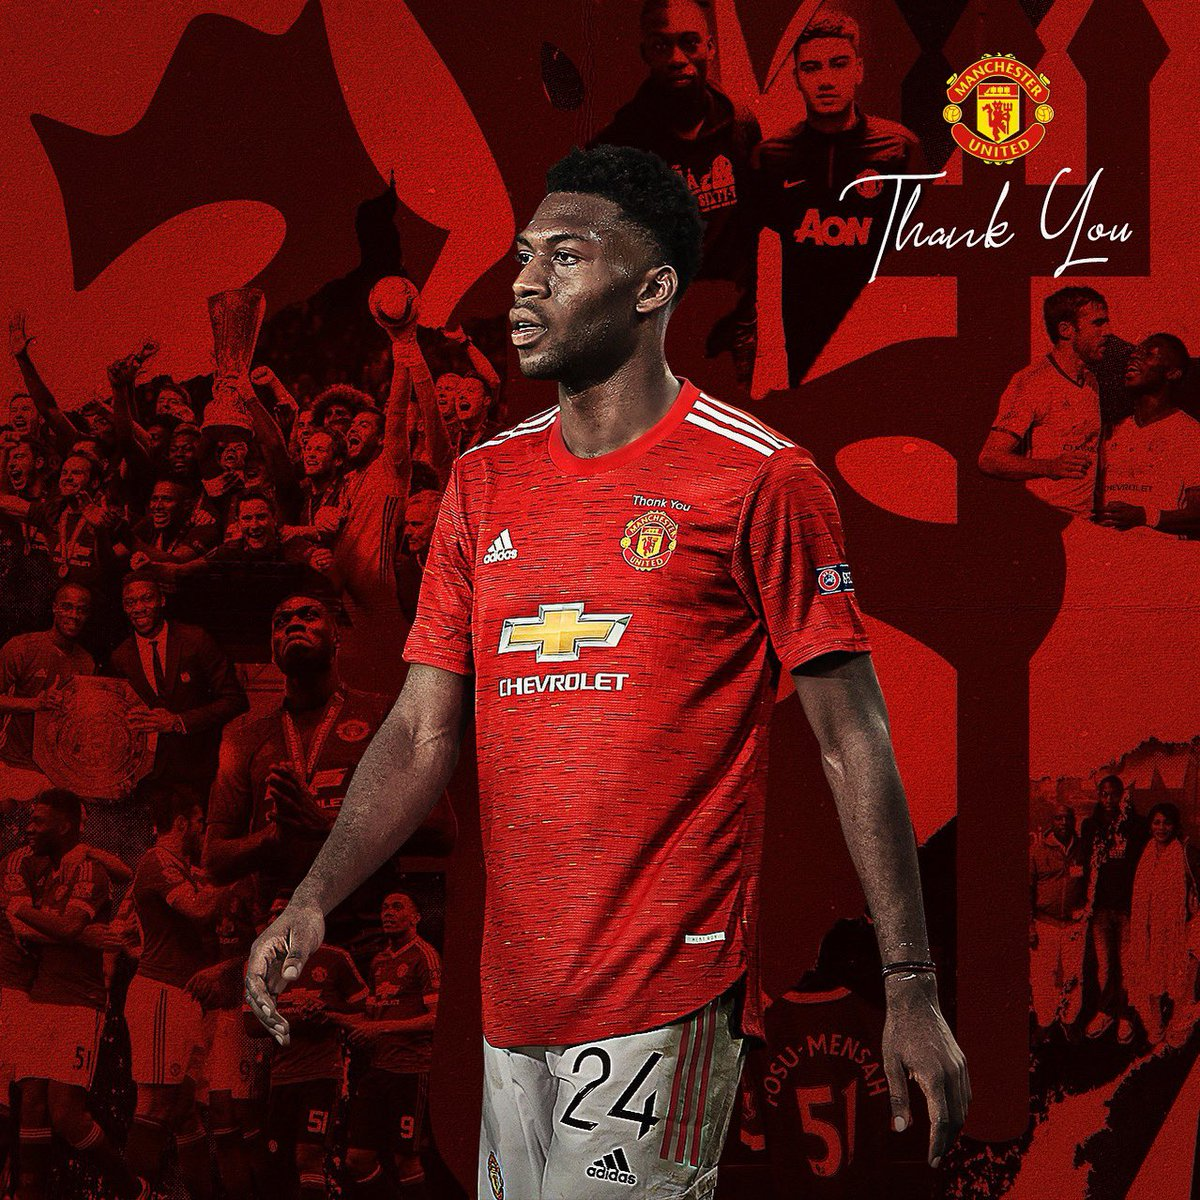 Forever in my heart.. the staff, the players, the fans! Thankyou for everything ❤️@ManUtd 🔴🔴🔴 #mufc #ggmu